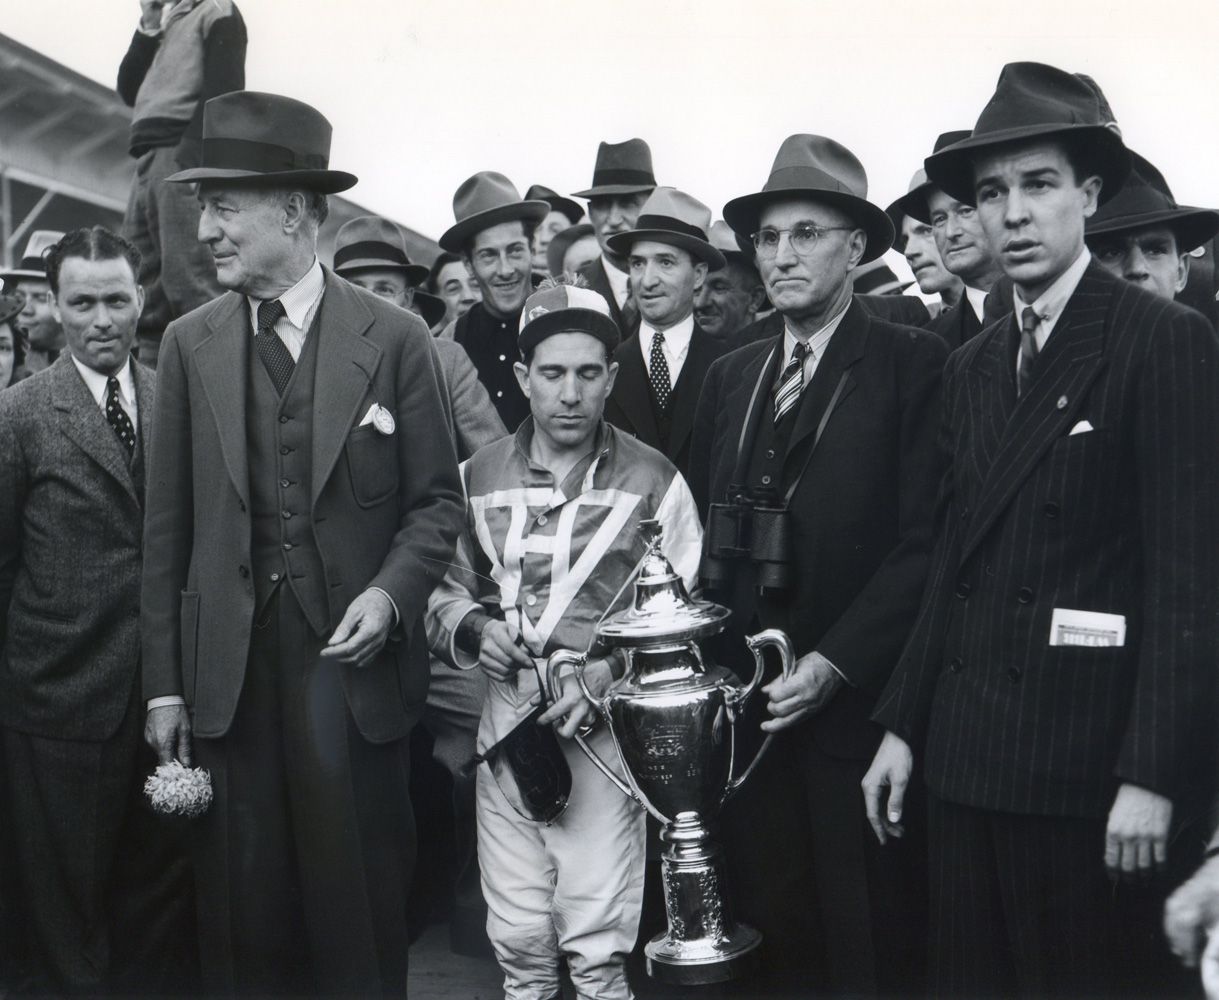 George Woolf and Tom Smith hold the Pimlico Special trophy with Alfred G. Vanderbilt on the right and owner Charles S. Howard on the left (Keeneland Library Morgan Collection/Museum Collection)